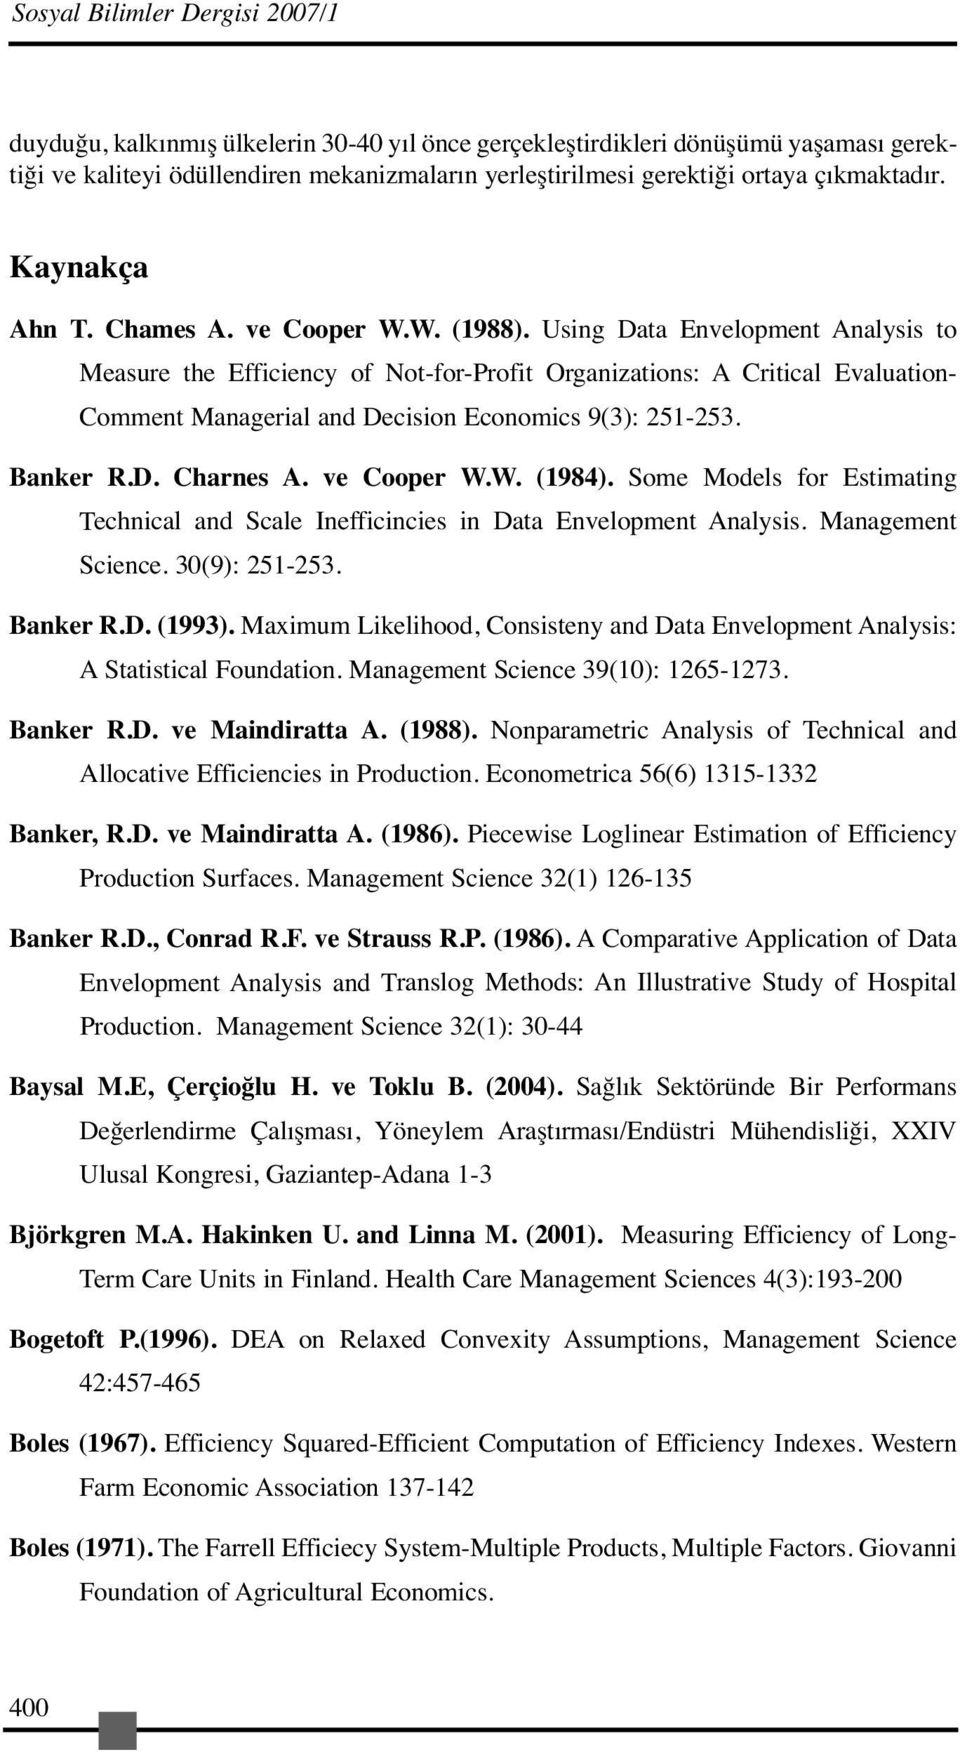 Using Data Envelopment Analysis to Measure the Efficiency of Not-for-Profit Organizations: A Critical Evaluation- Comment Managerial and Decision Economics 9(3): 251-253. Banker R.D. Charnes A.